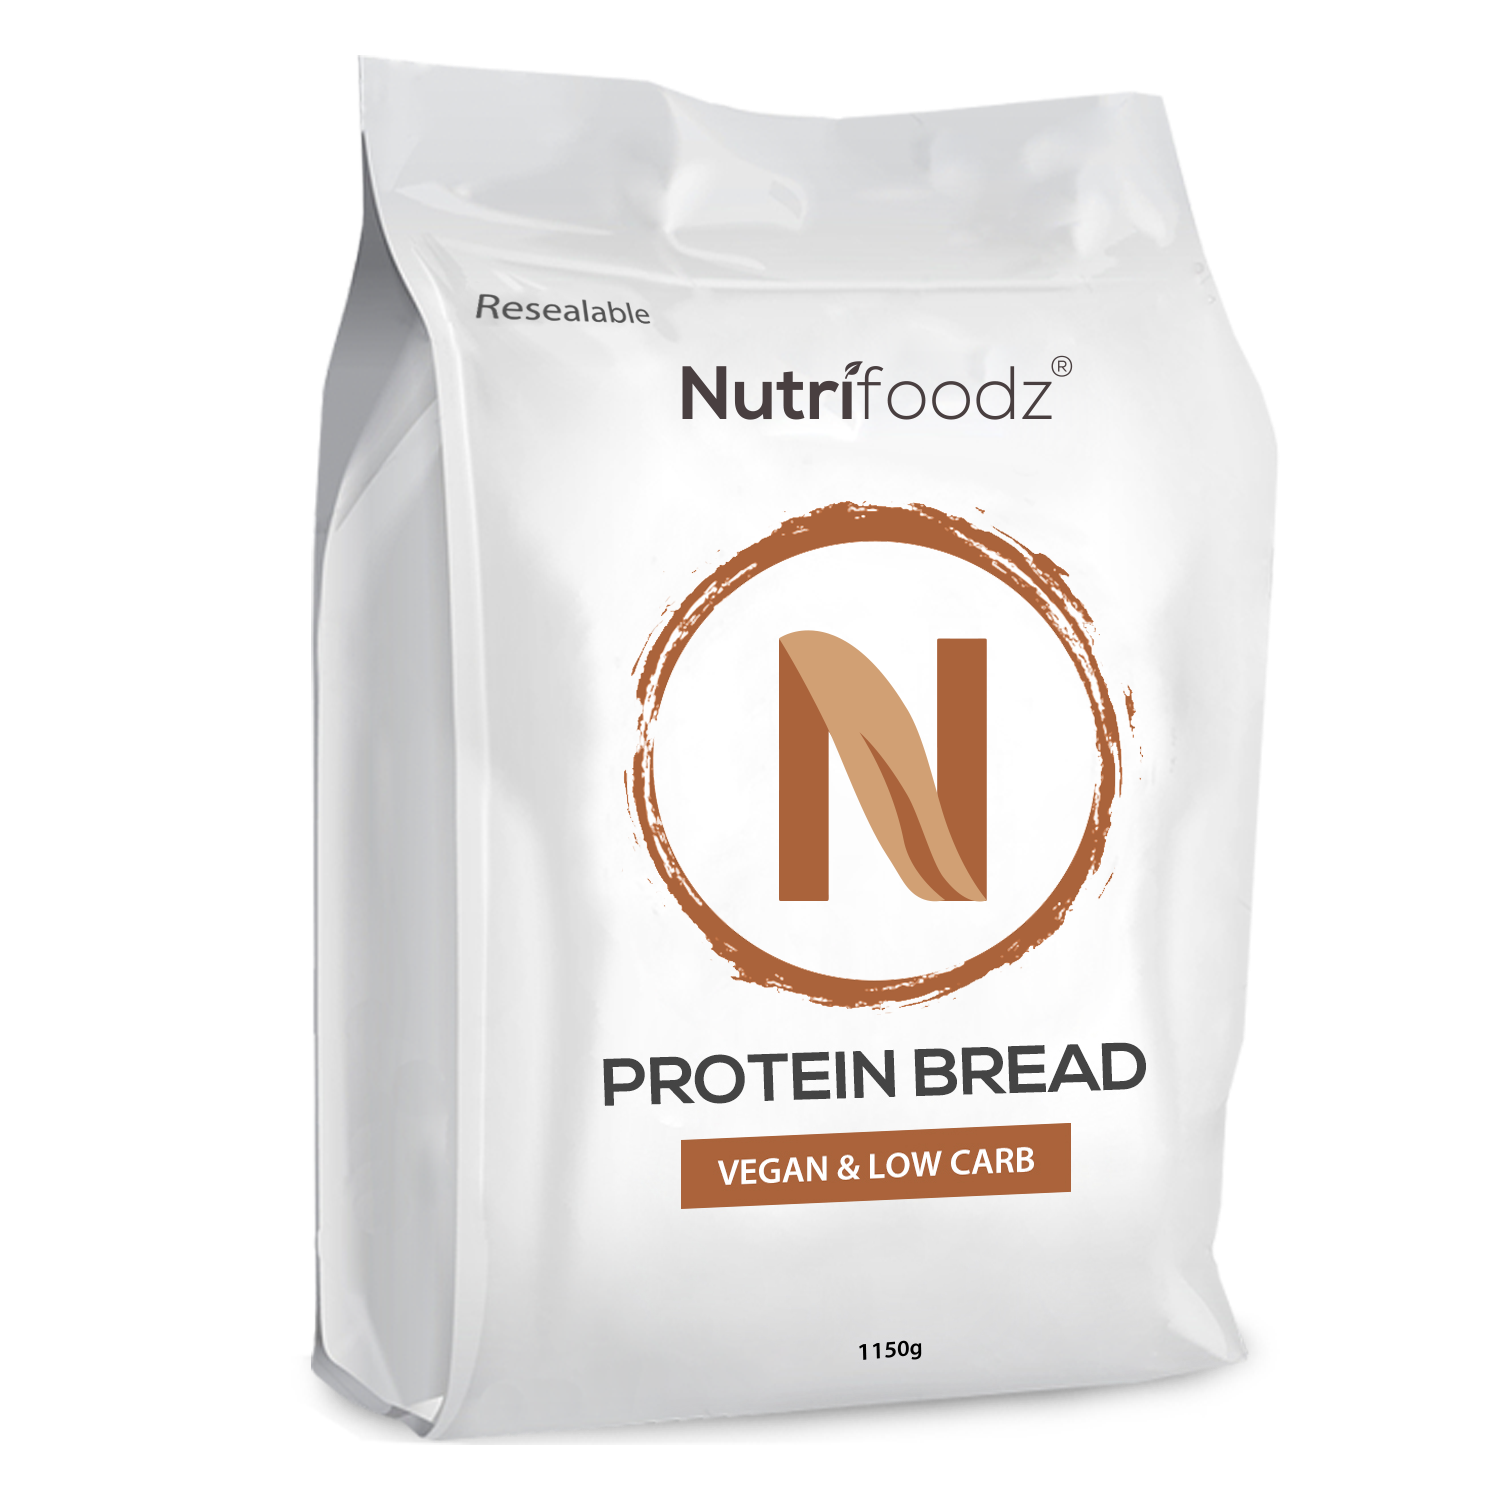 Protein Bread nutrition